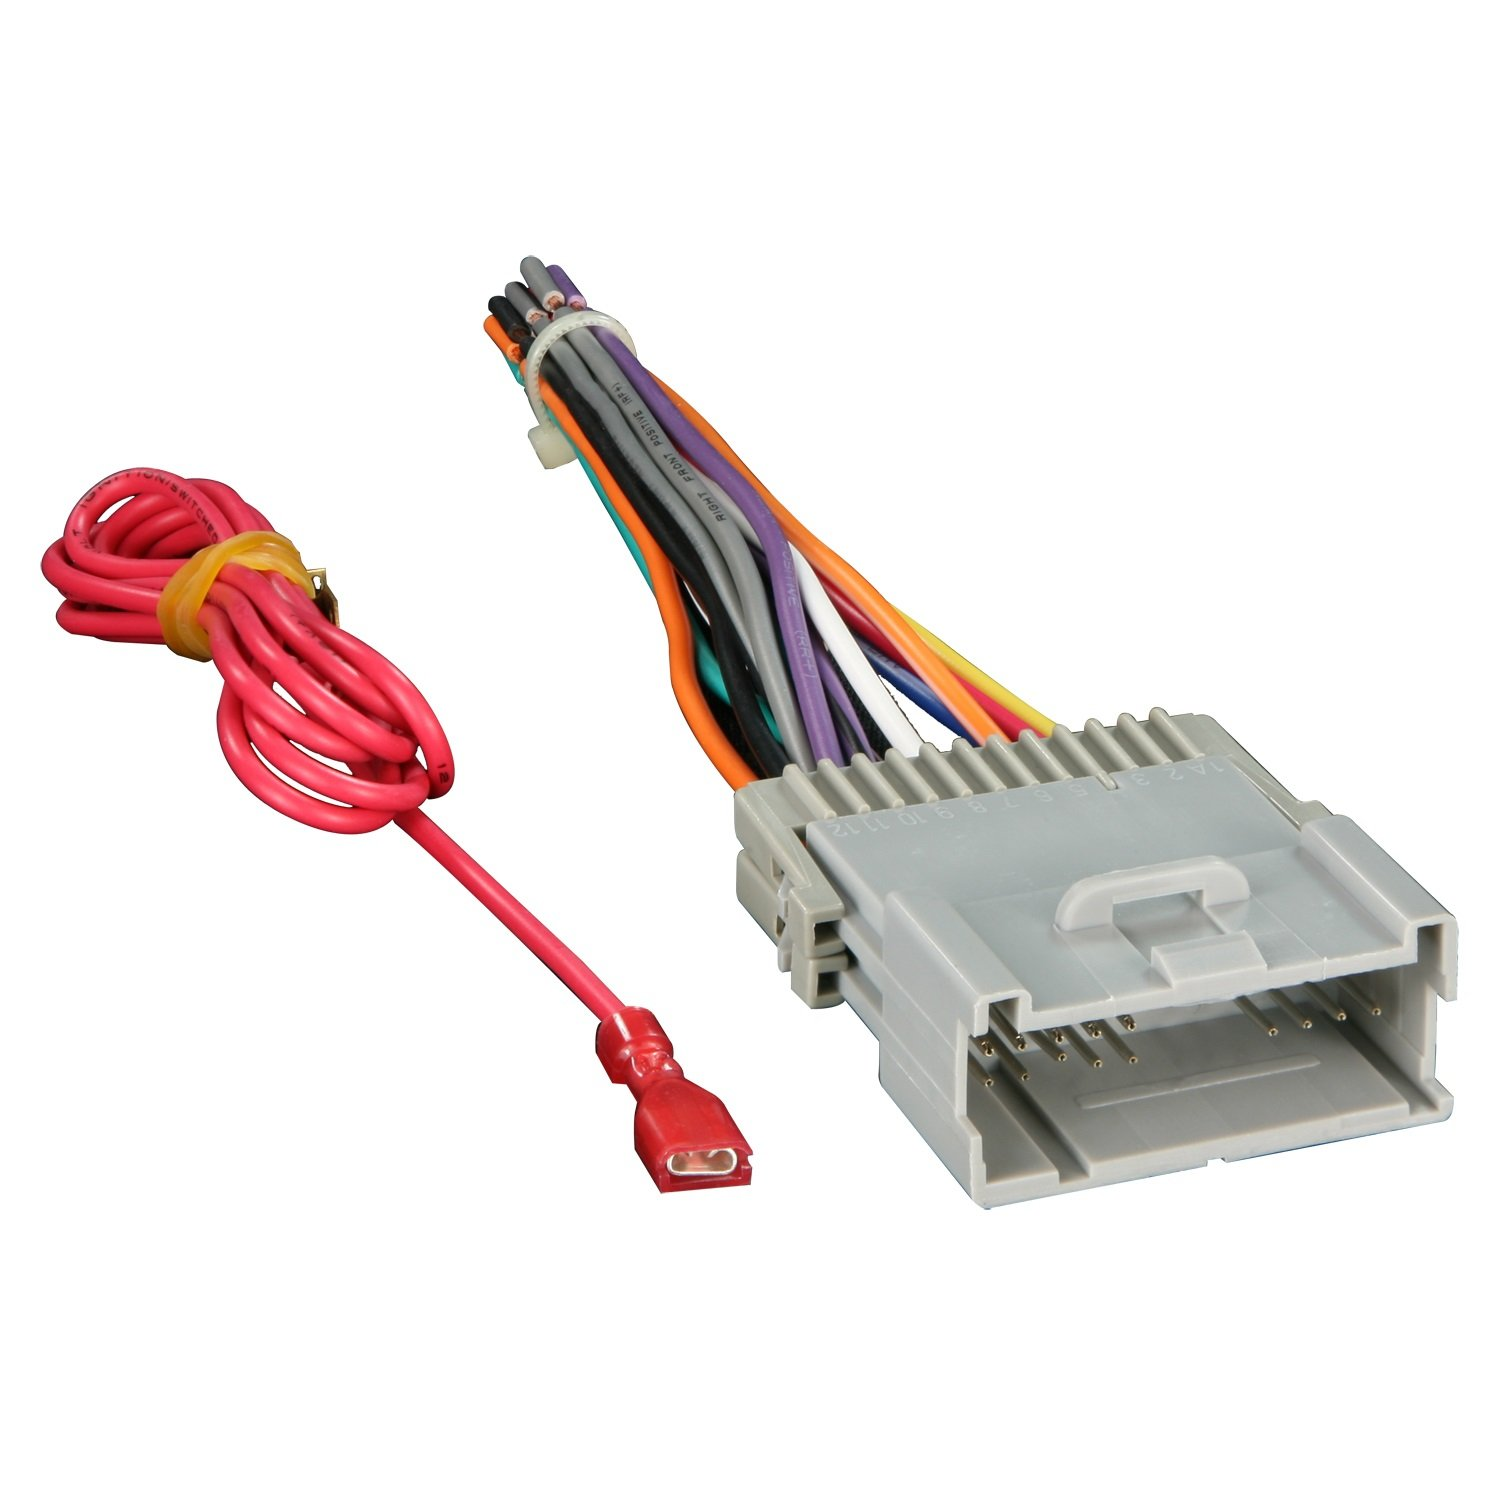 61eewxp9orL._SL1500_ amazon com metra 70 2003 radio wiring harness for gm 98 08 05 impala stereo wiring harness at edmiracle.co